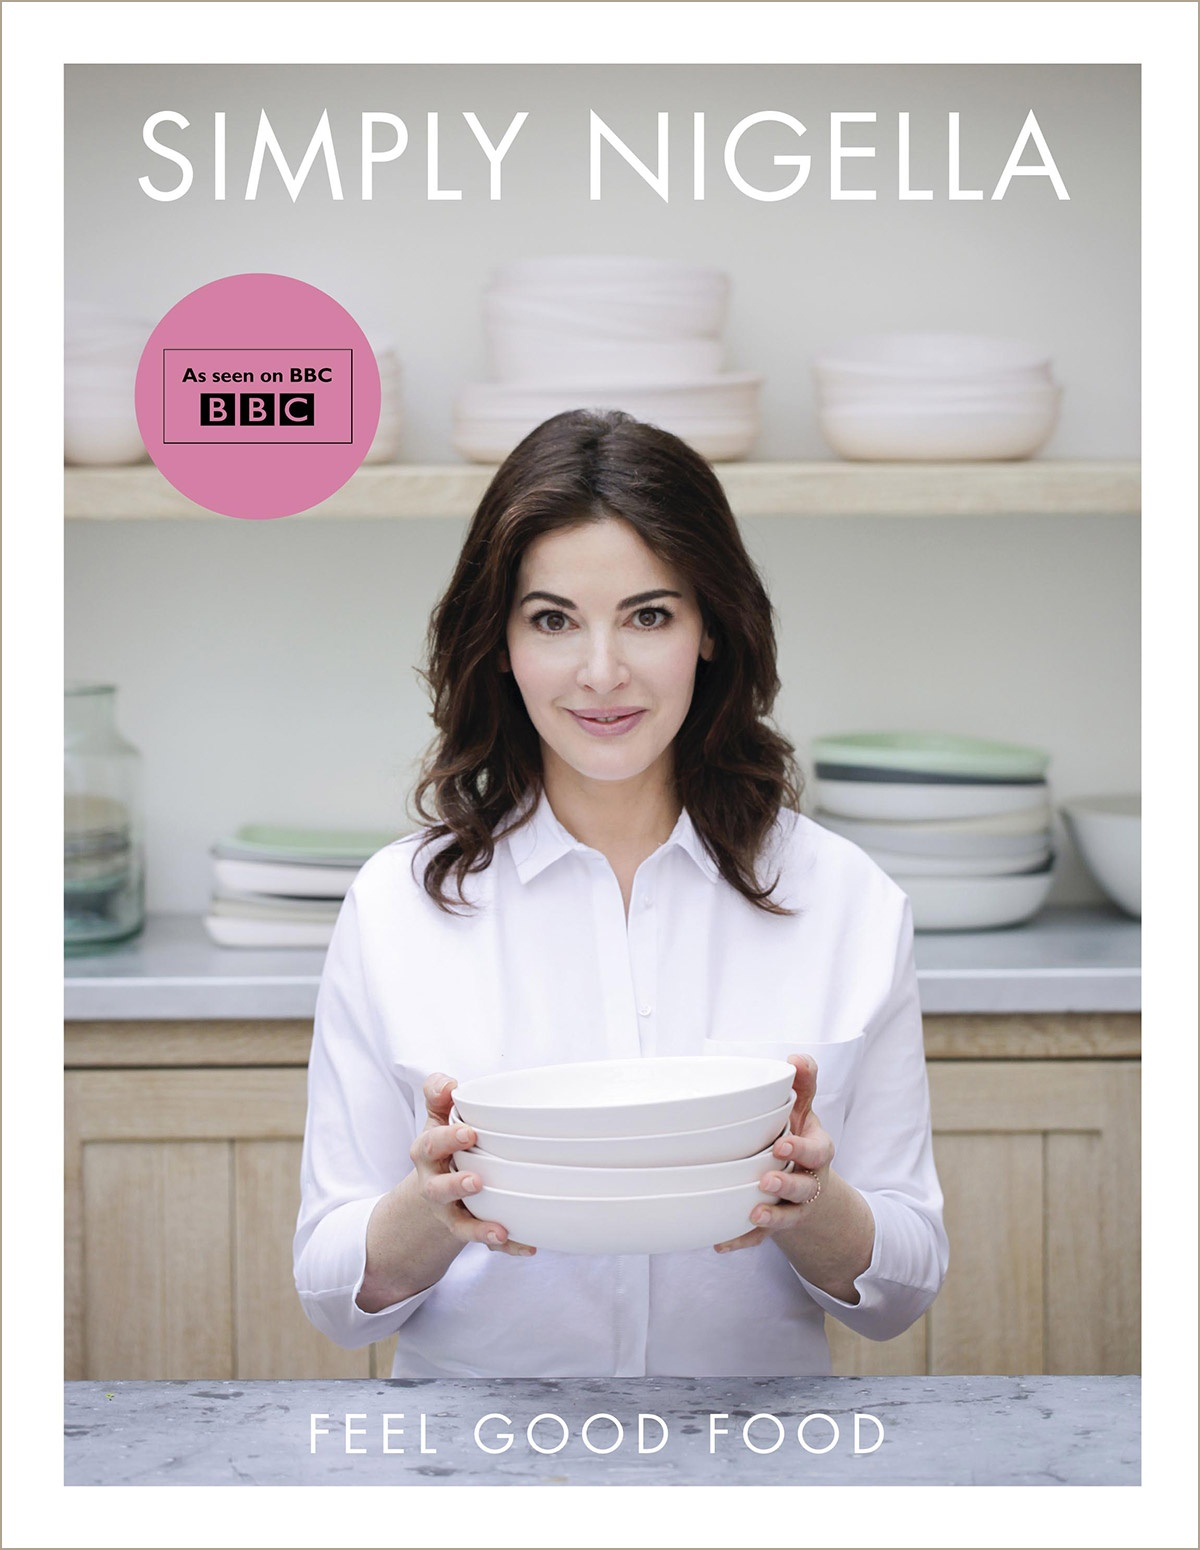 SIMPLY NIGELLA book cover